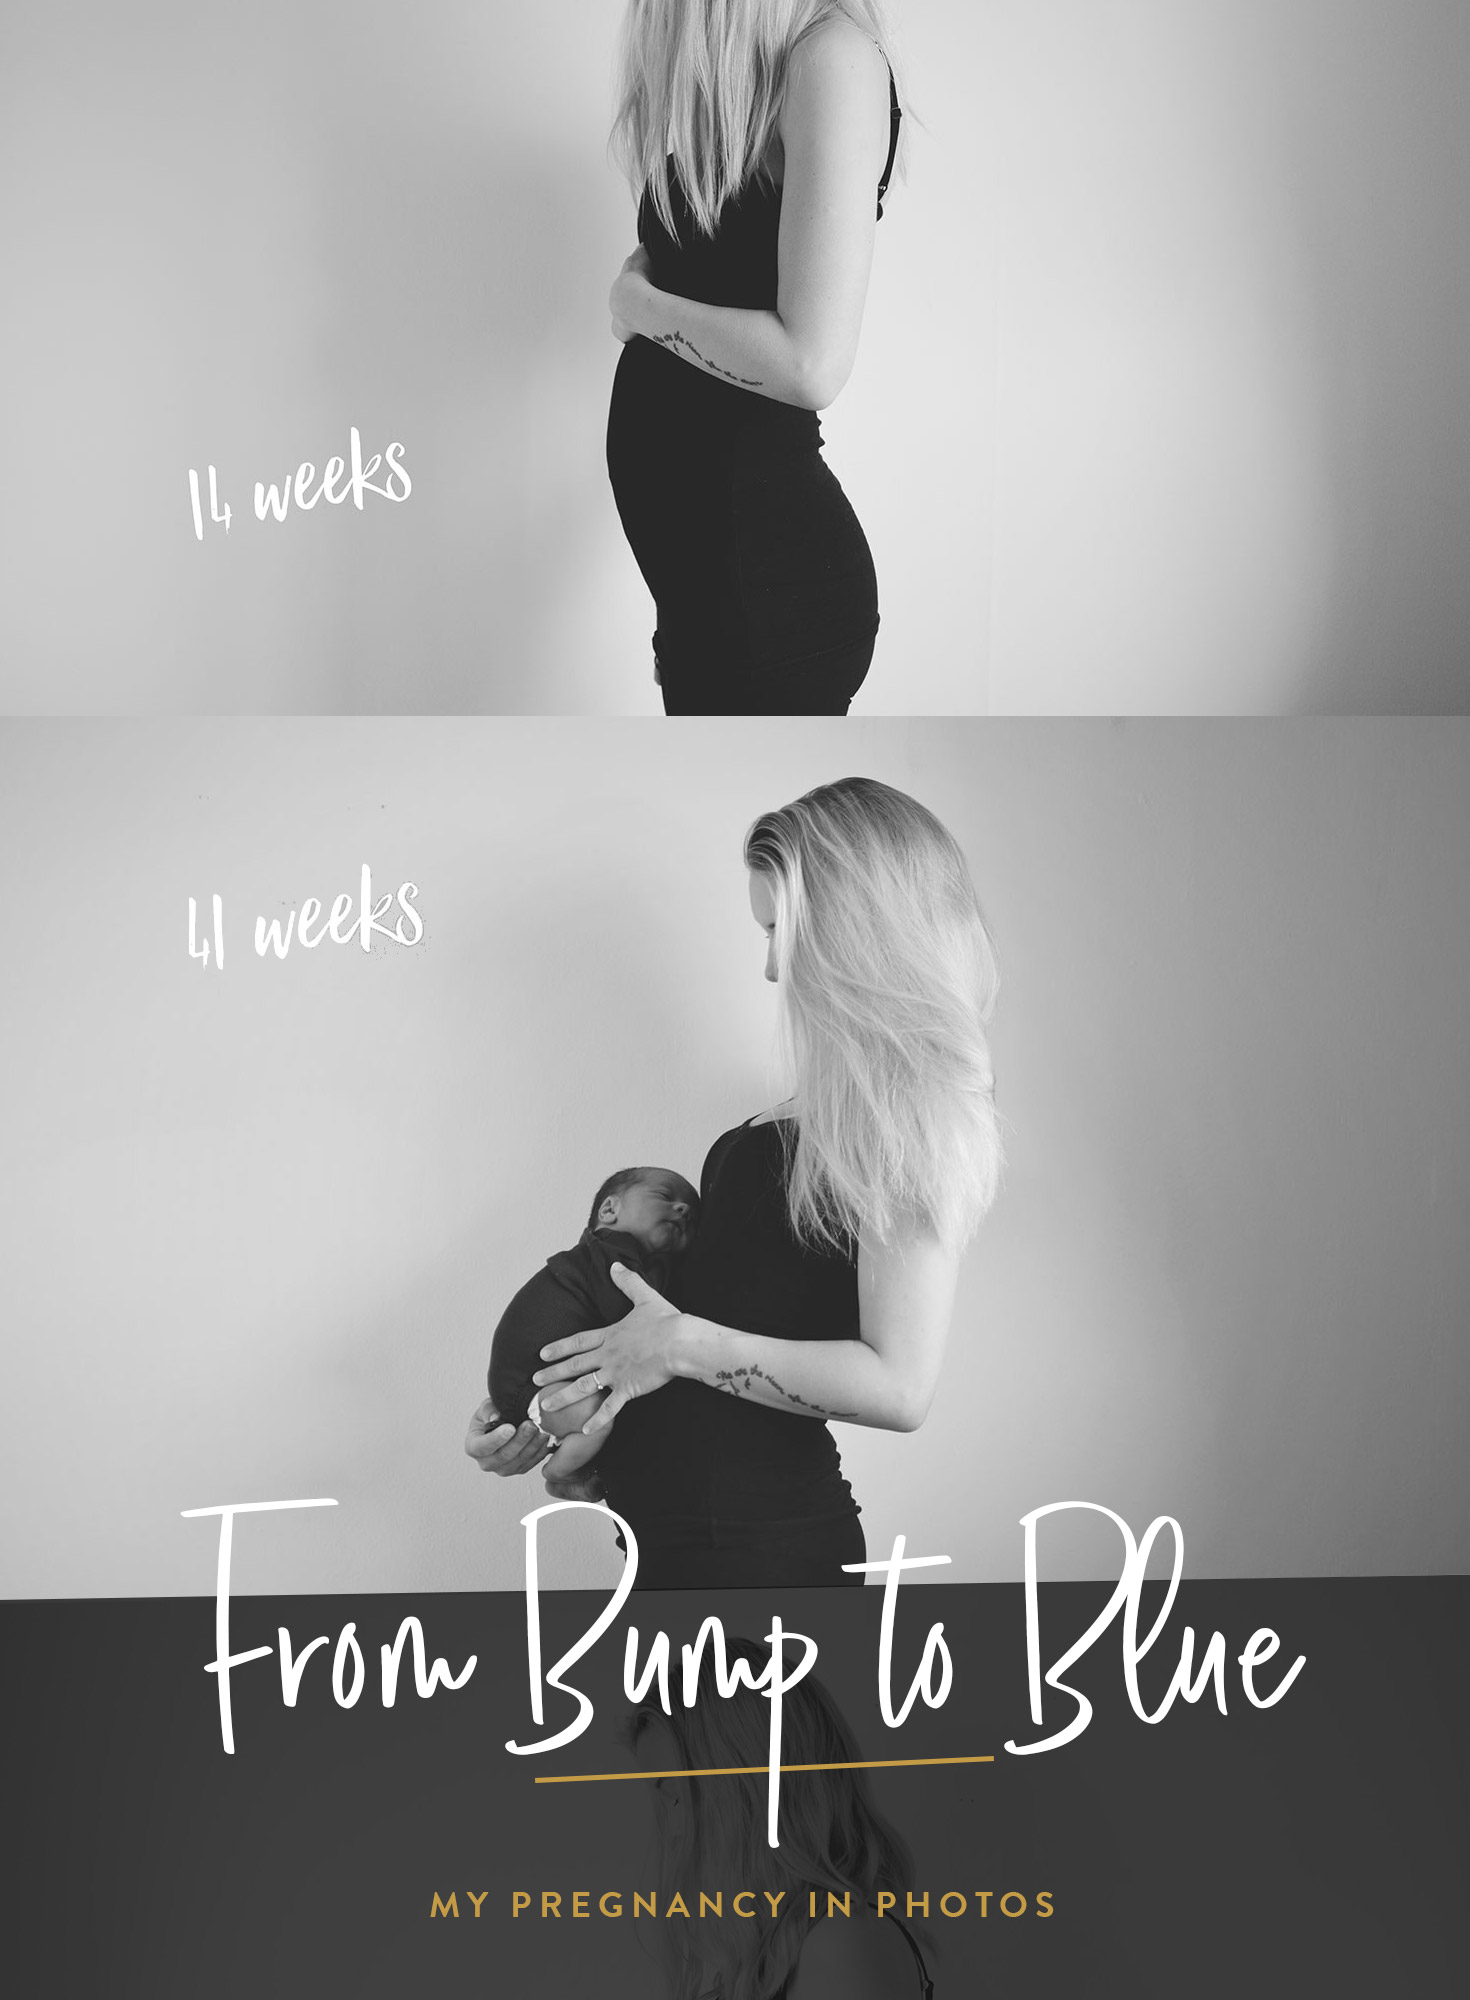 This pregnancy, I was determined to take weekly bump shots so I could put them all together at the end and see the beautiful (and totally gross at times) journey we took up to the birth of Jesse Blue.